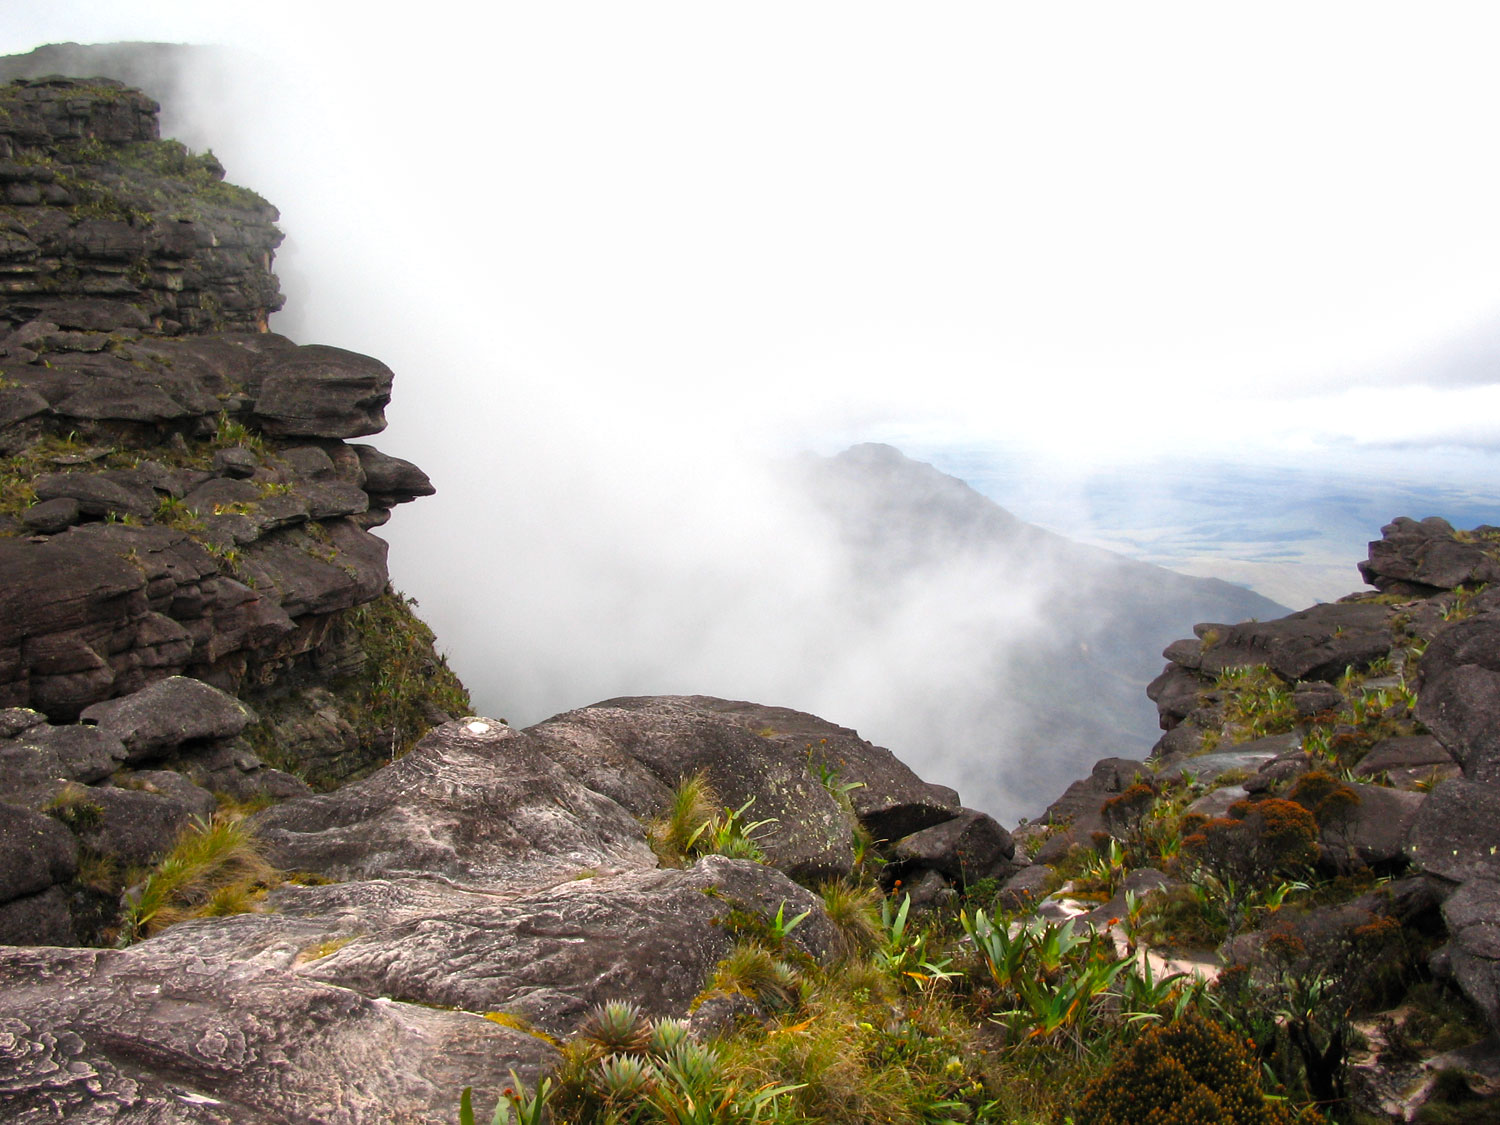 Looking back from the summit of Roraima through the 'gate'. Photograph by Nicholas Laughlin